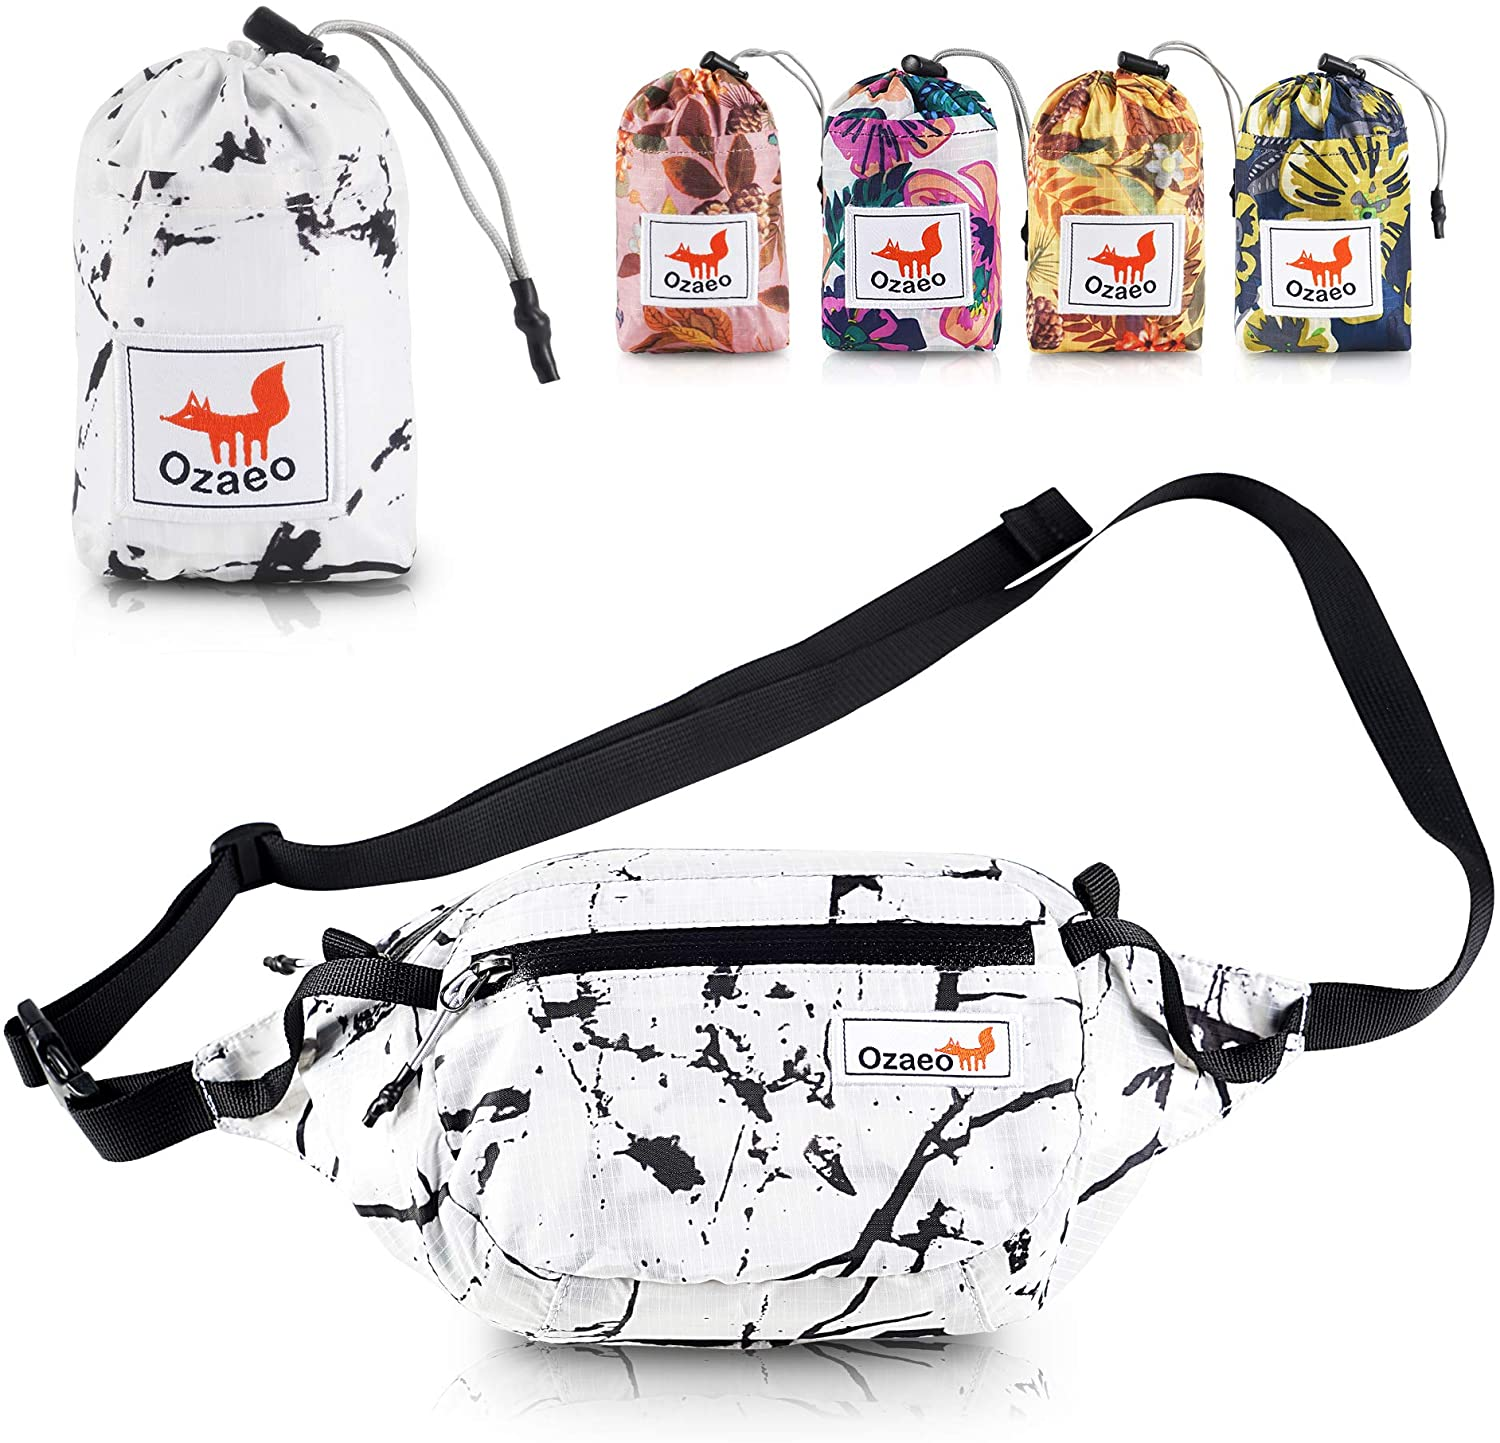 Ozaeo Travel Waist Bag, Water Resistant, Lightweight, Hiking Fanny Pack with 3-Zipper Pockets and Adjustable Strap